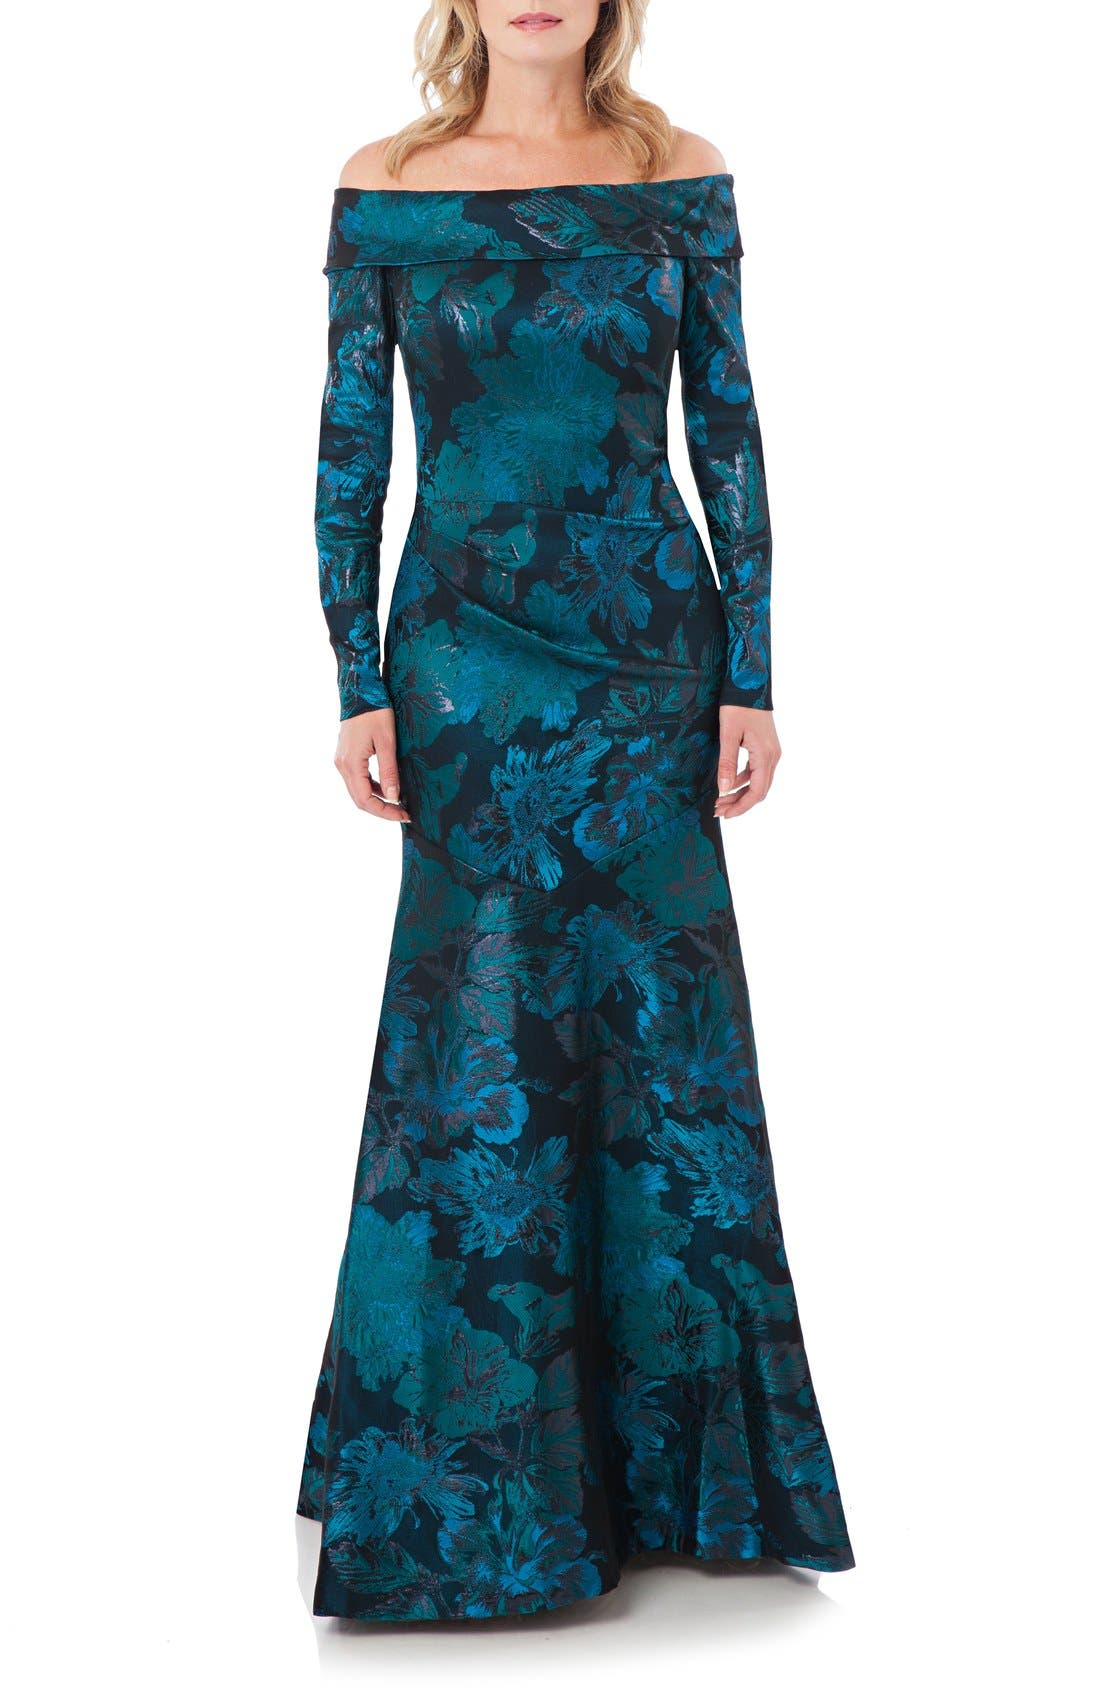 Alternate Image 1 Selected - Theia Metallic Floral Jacquard Mermaid Gown